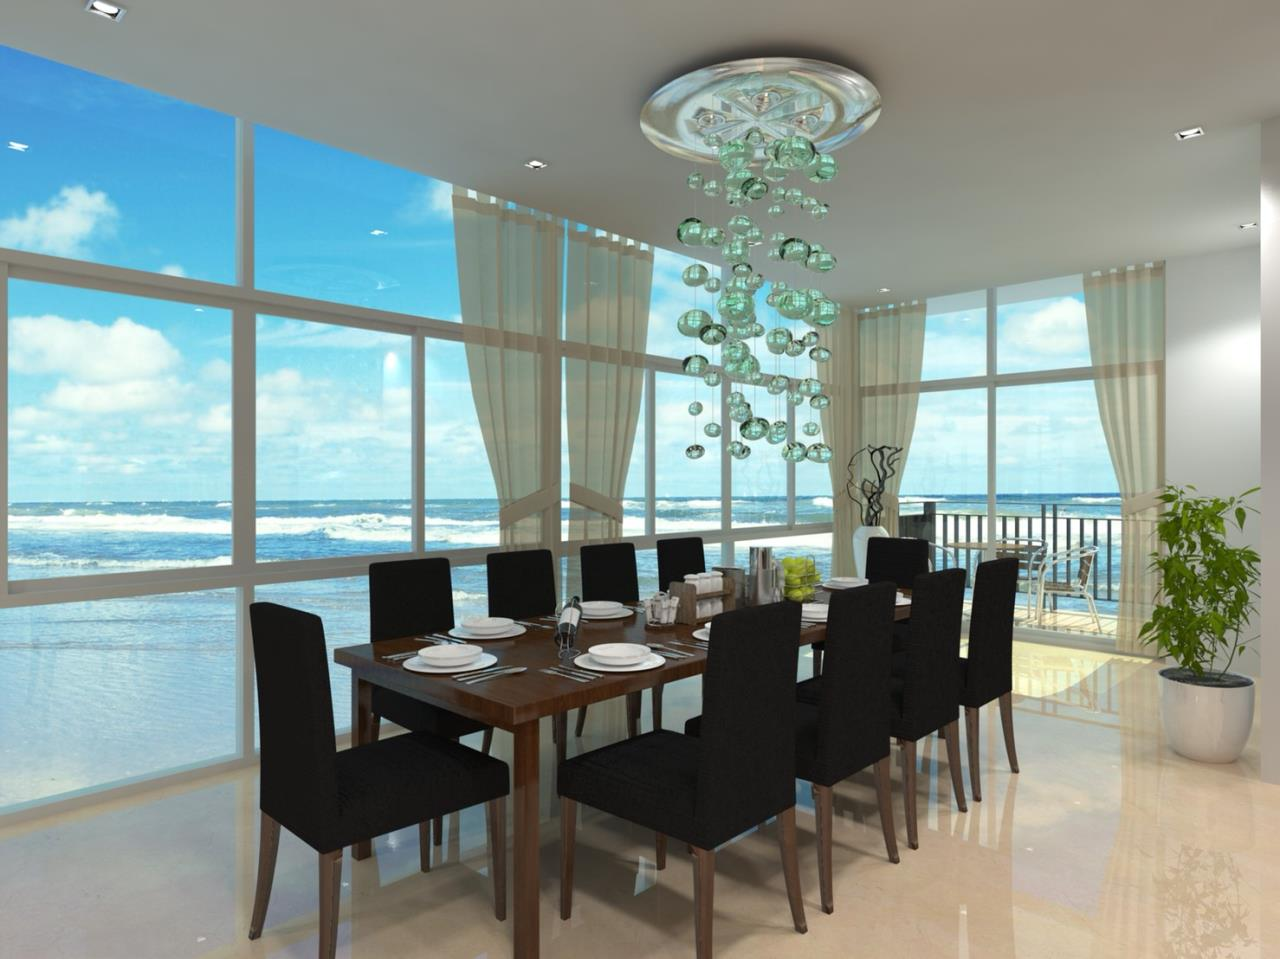 Signature Realty ( Thailand ) Co Ltd Agency's Furnished 2bedroom 58 sq.m condo with jacuzzi floor 2-10 at The Grand Jomtein Beach Pattaya 32